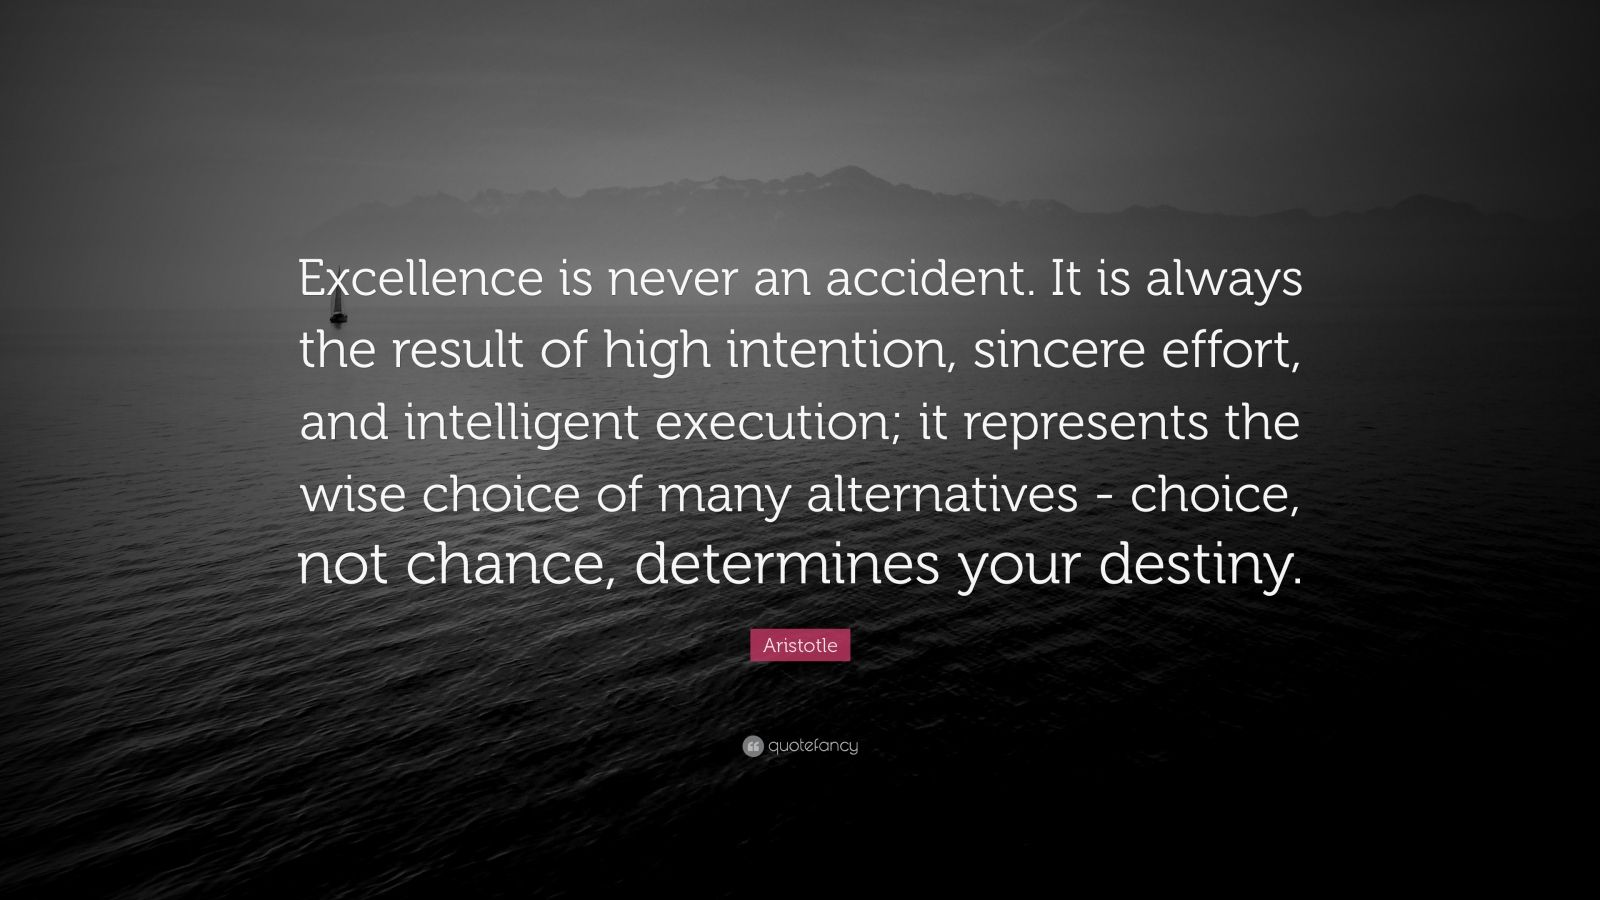 Is Accident and It Is Always Never the Excellence